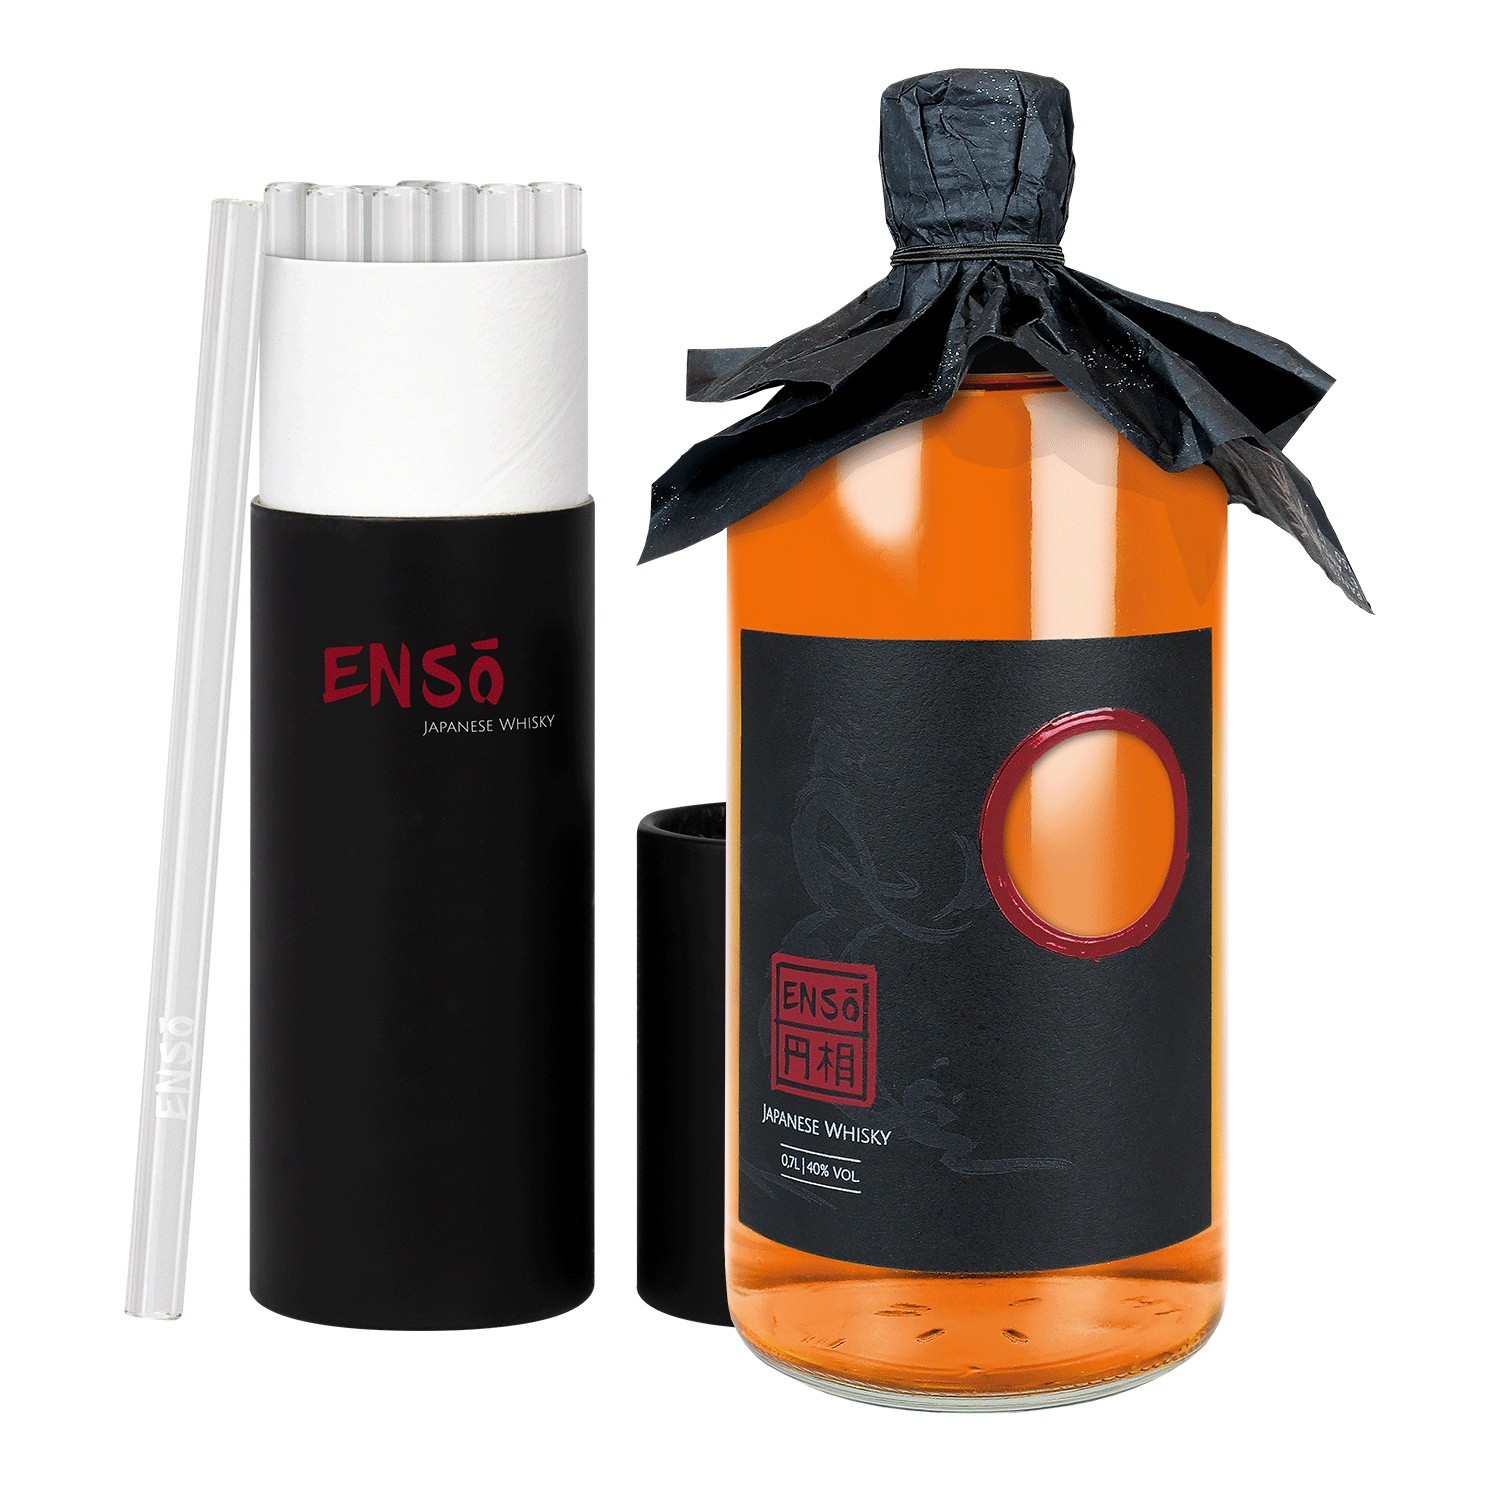 ENSO BLENDED WHISKY + GLASHALME